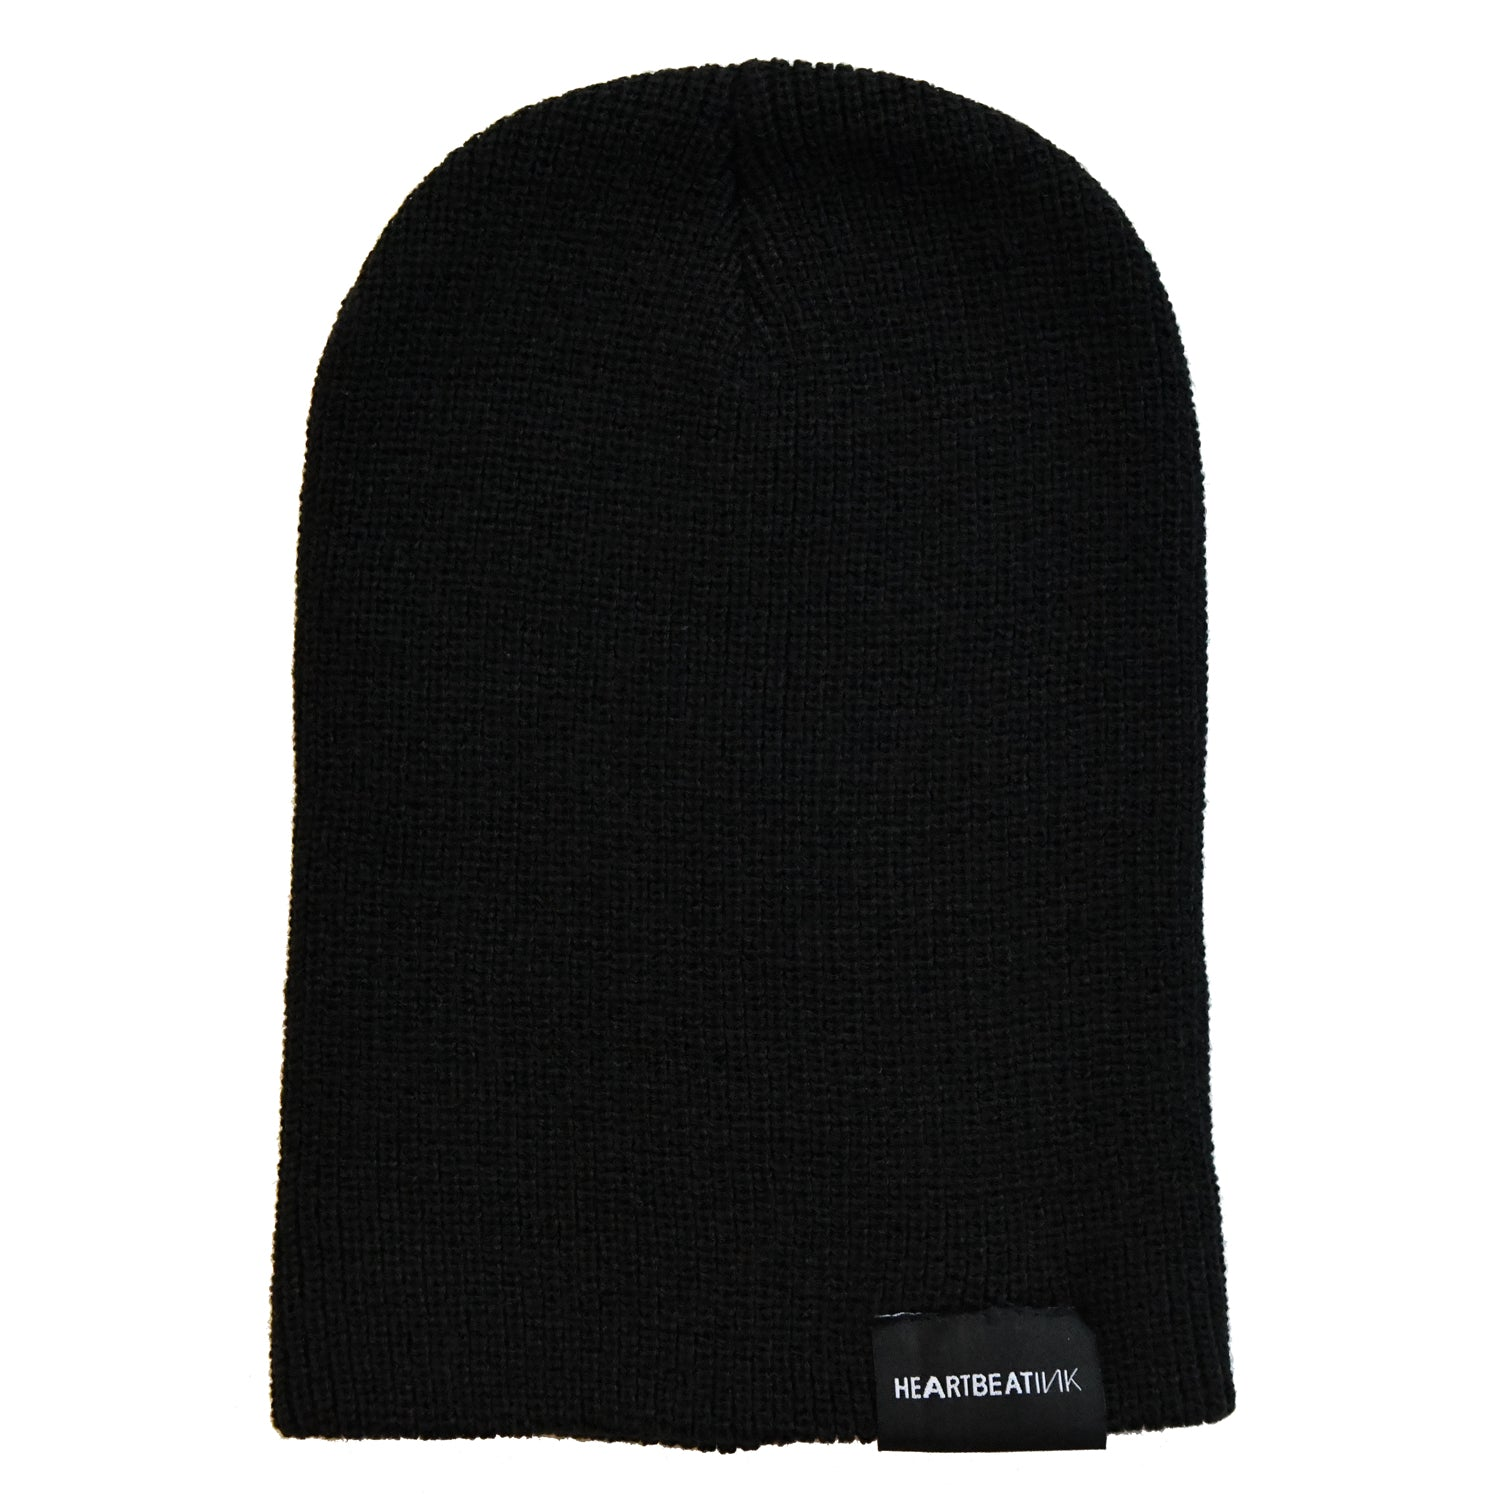 HeartbeatInk Protect Your Passion Black Beanie